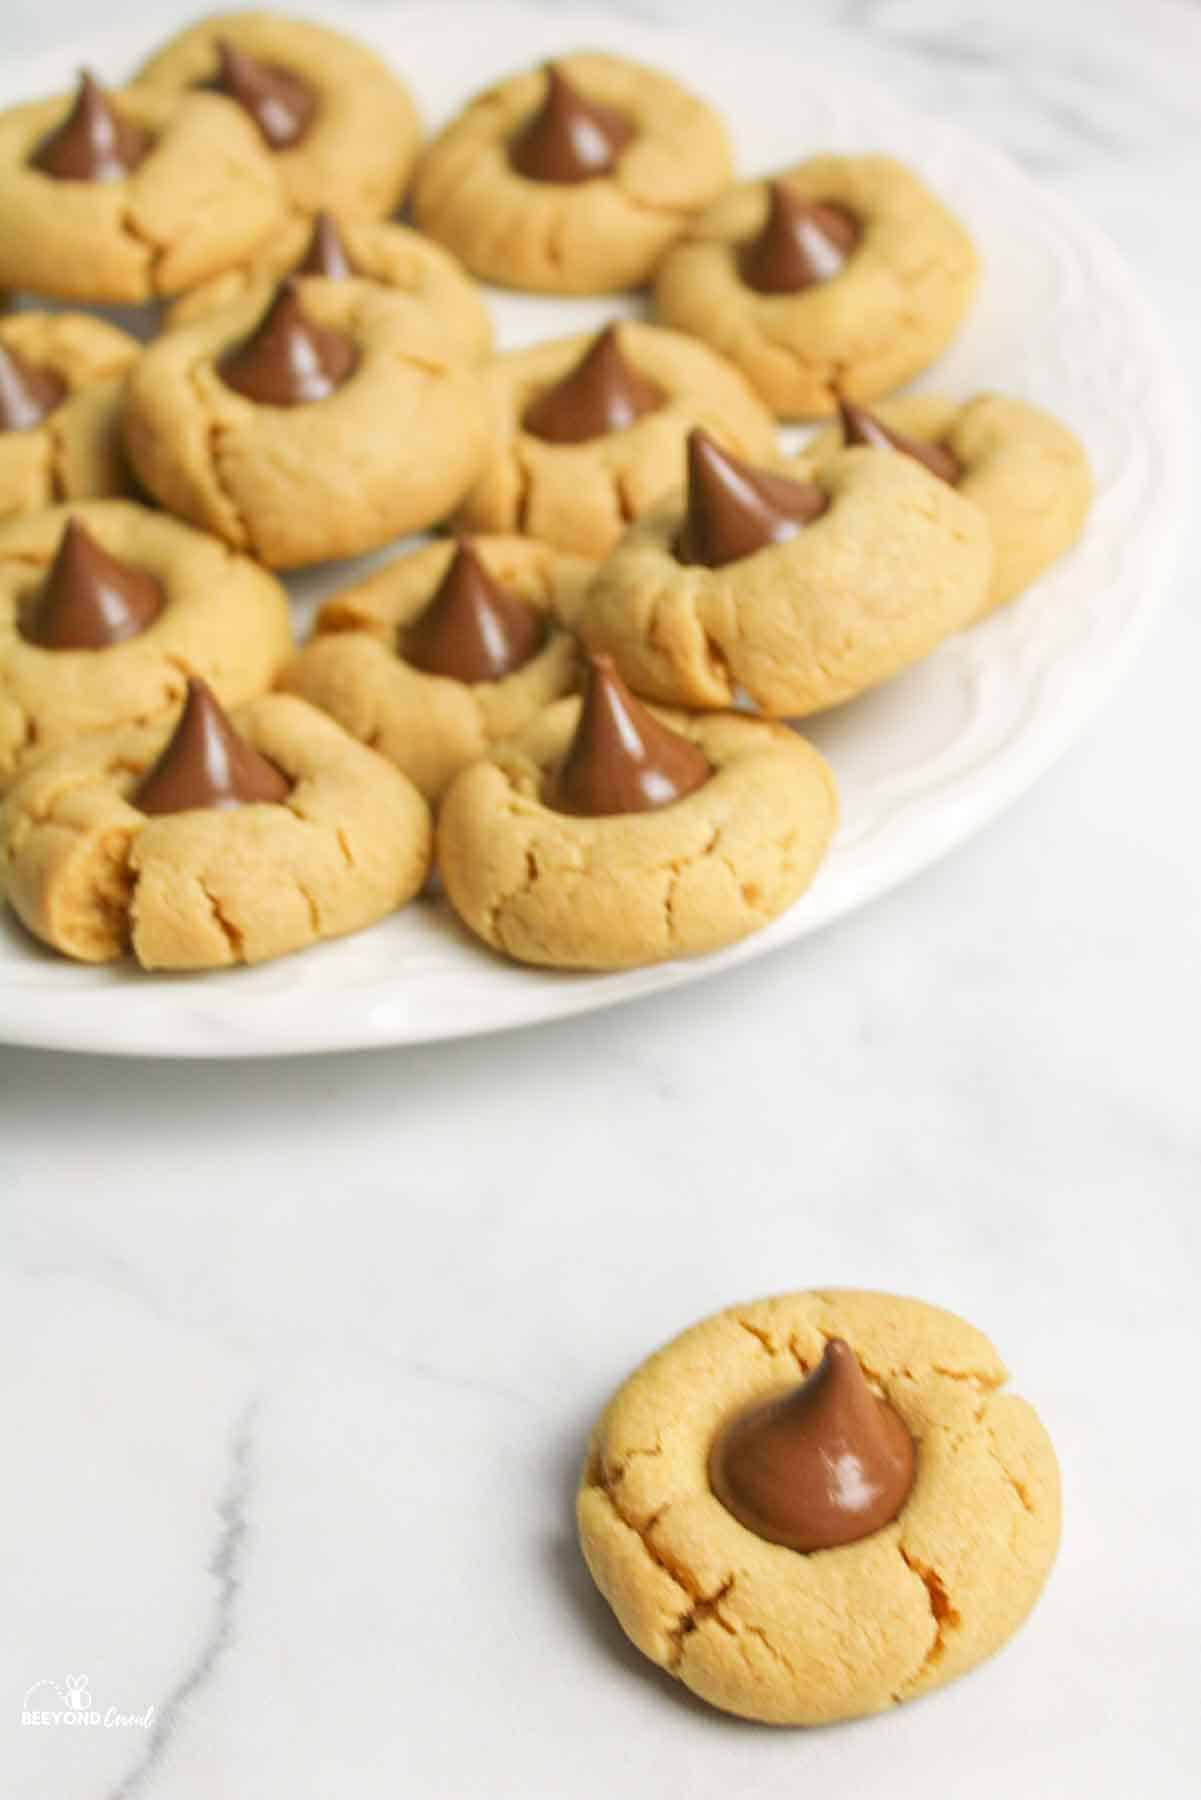 a plate of peanut butter blossom cookies with one off of the plate in front